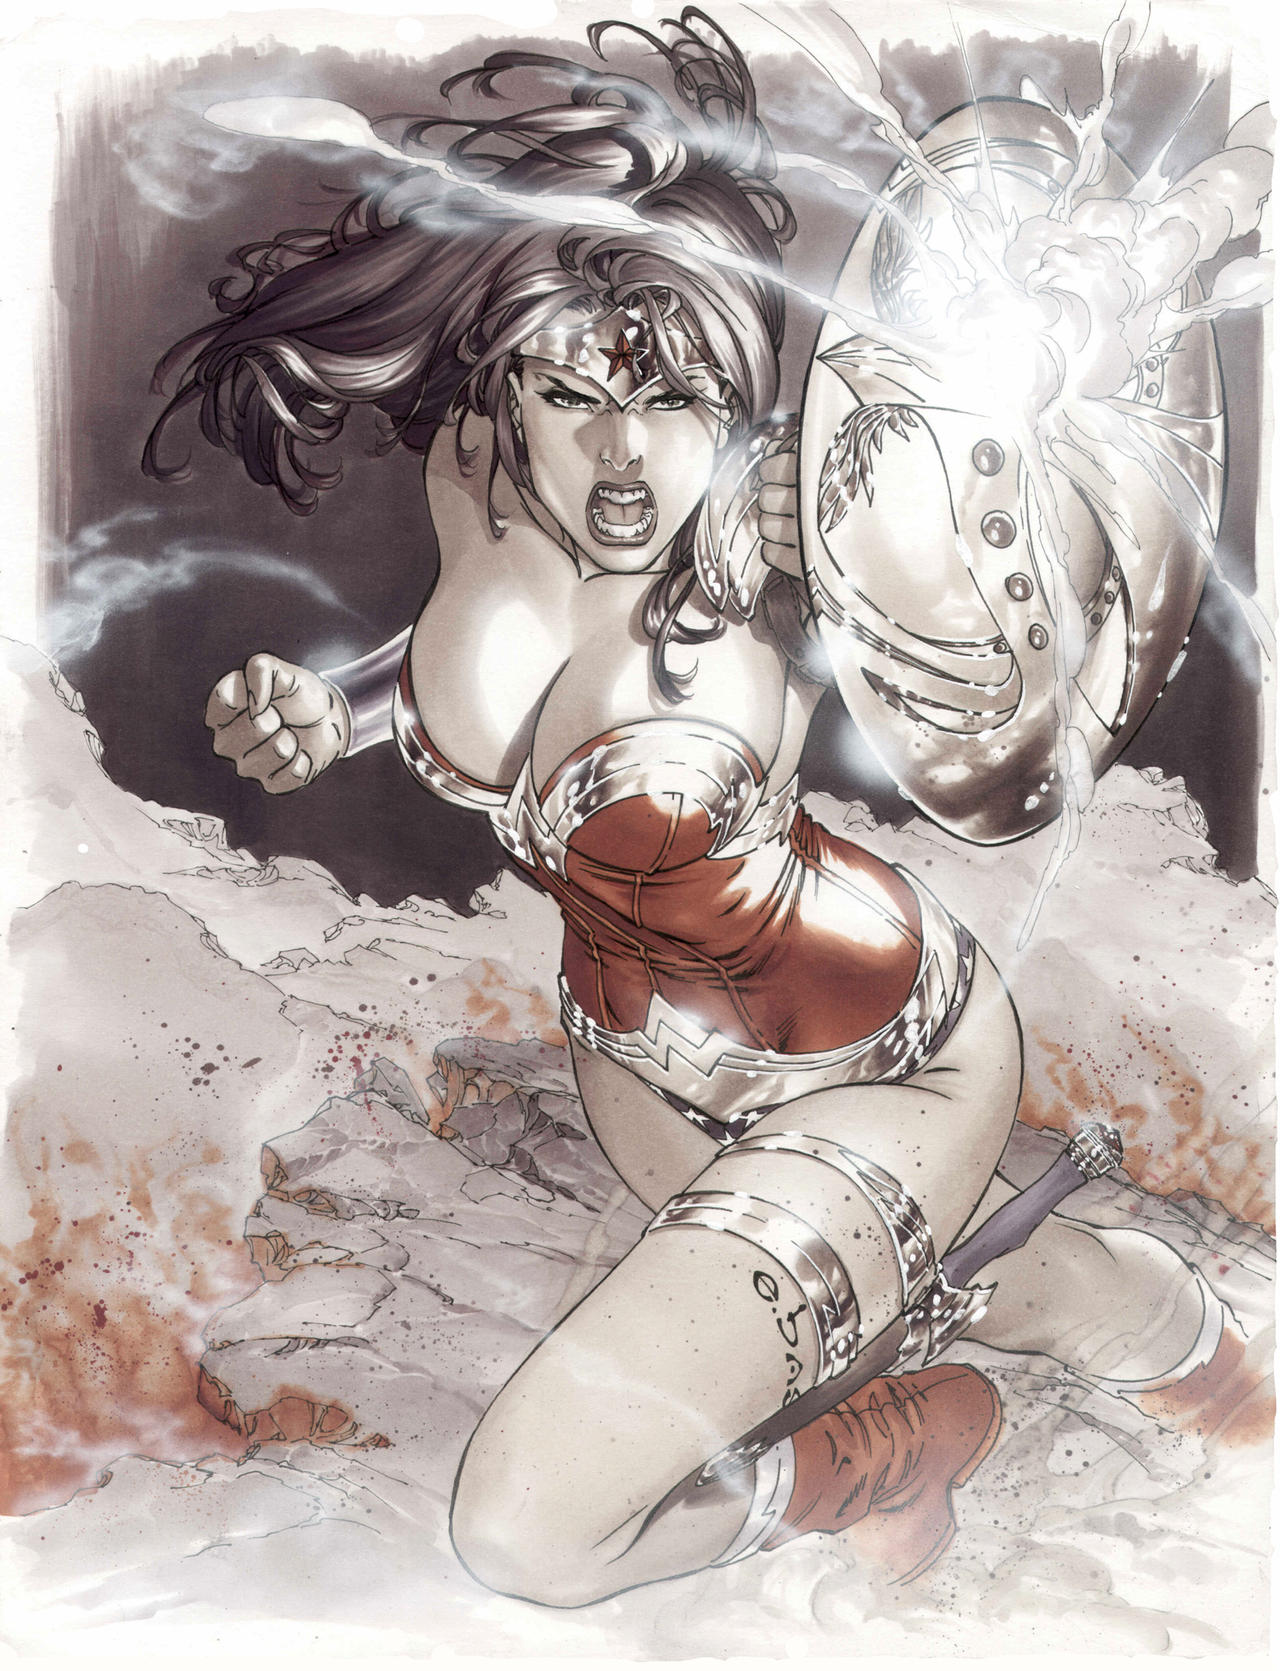 battle wonder woman by ebas